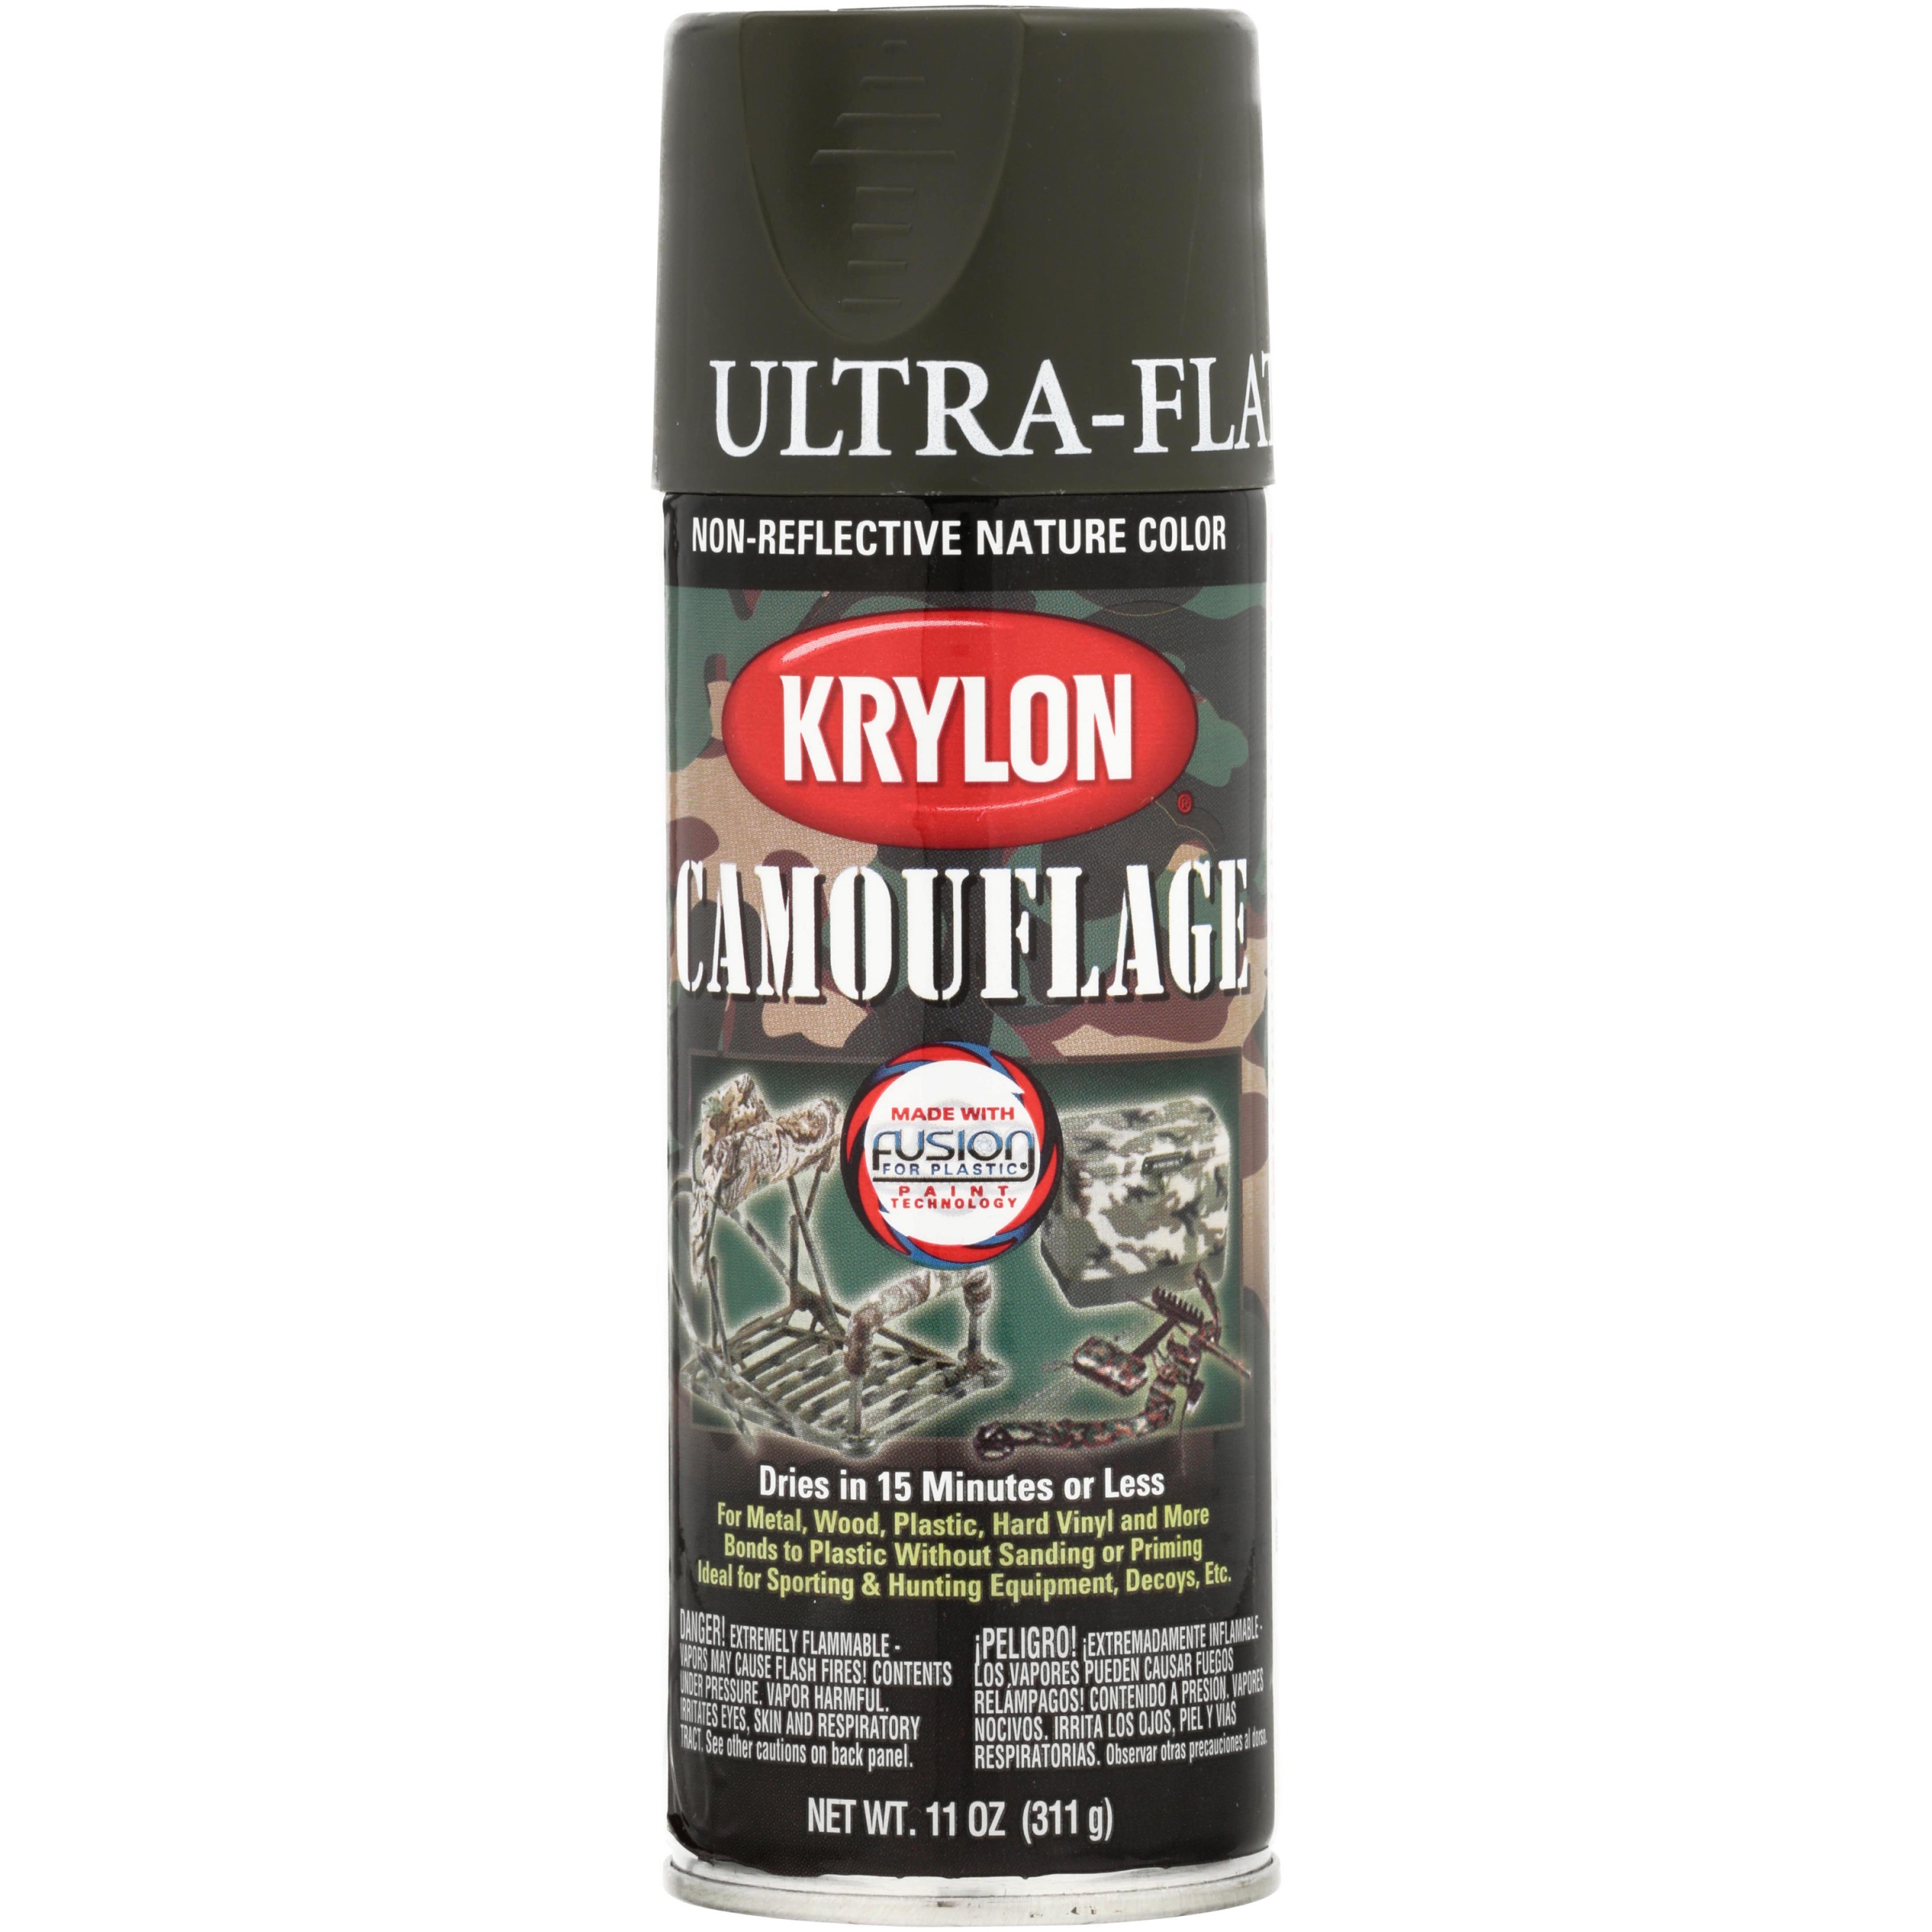 Krylon® Ultra-Flat Non-Reflective Nature Color Olive Camouflage Spray Paint 11 oz. Can